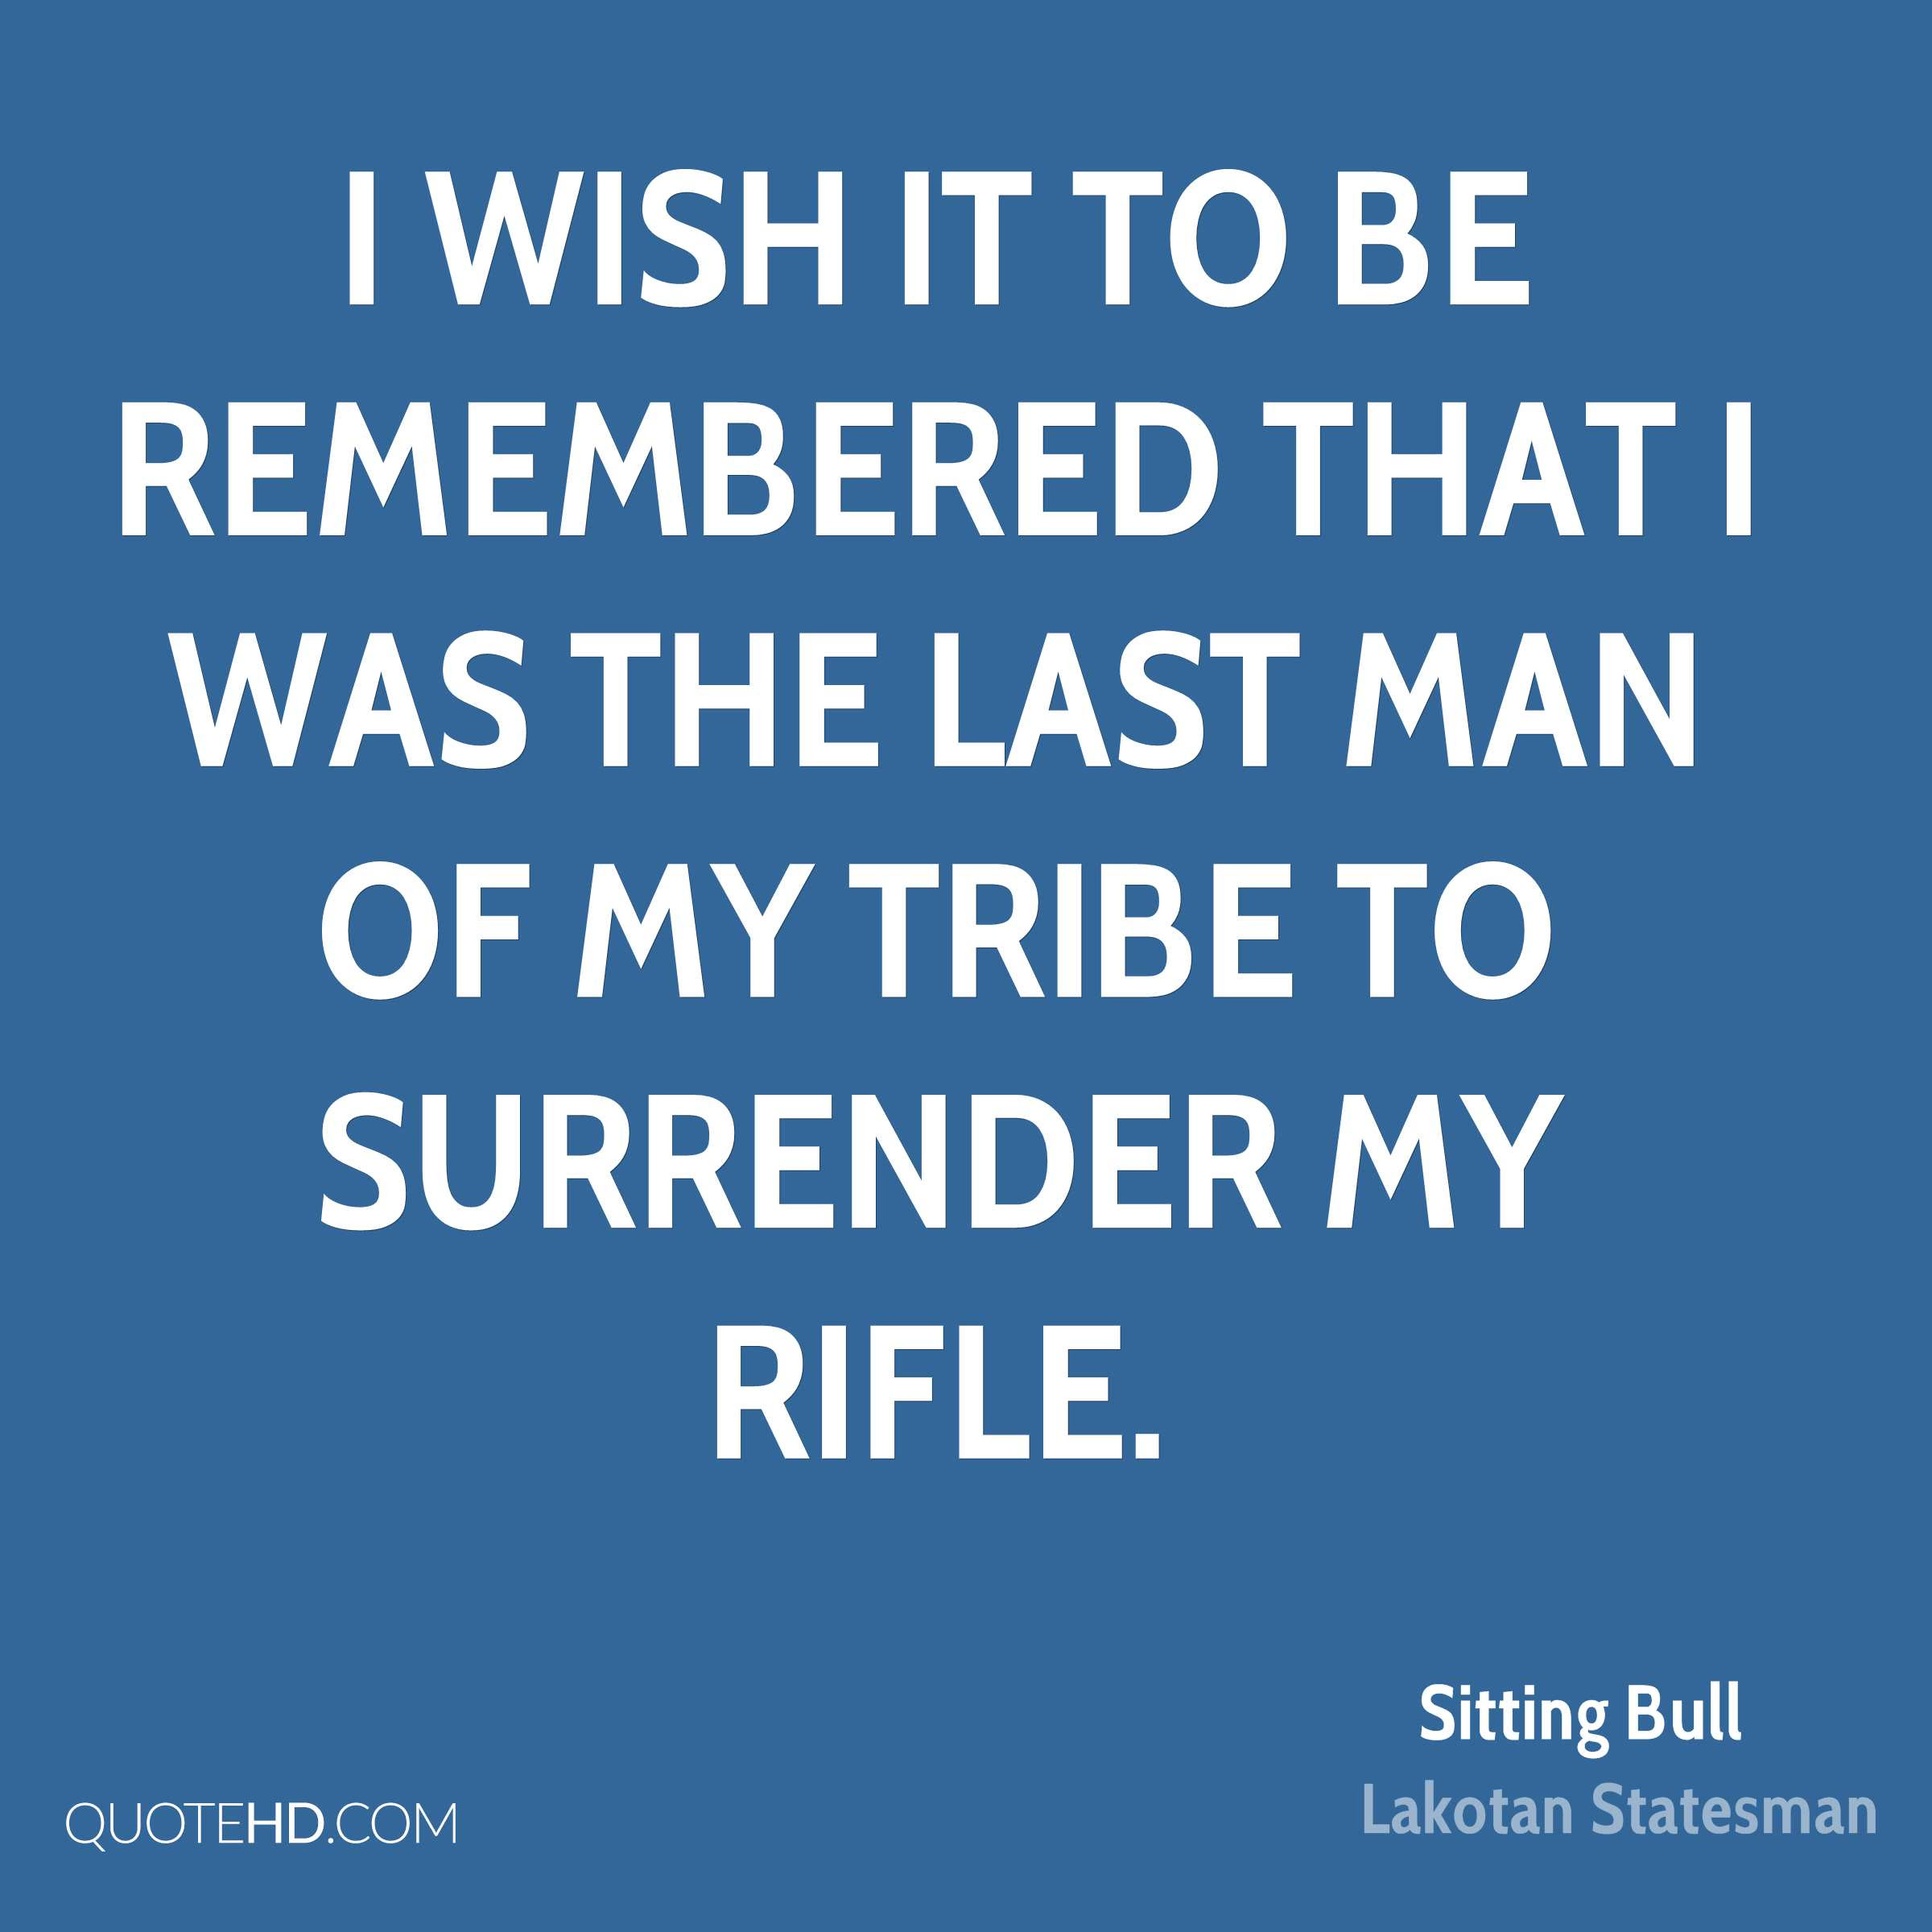 Sitting Bull Quotes Quotehd